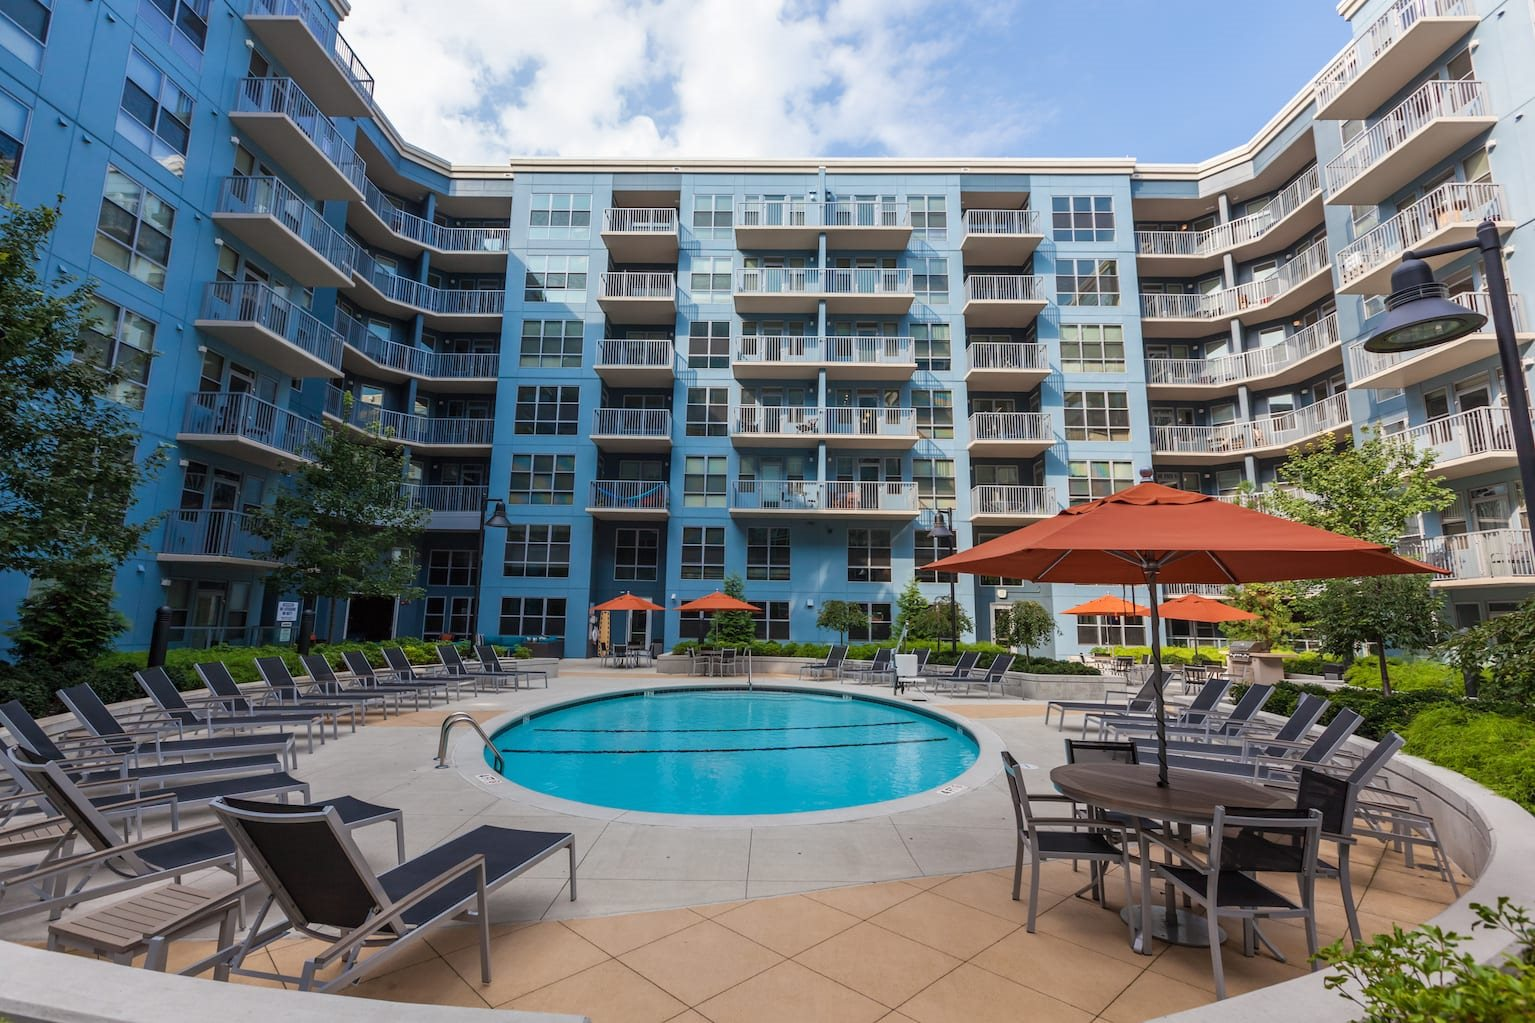 Radius at the Banks Apartments for Rent in Cincinnati, OH Resident Outdoor Pool and Sundeck with Lounge Seating, Firepit, and Grilling Areas